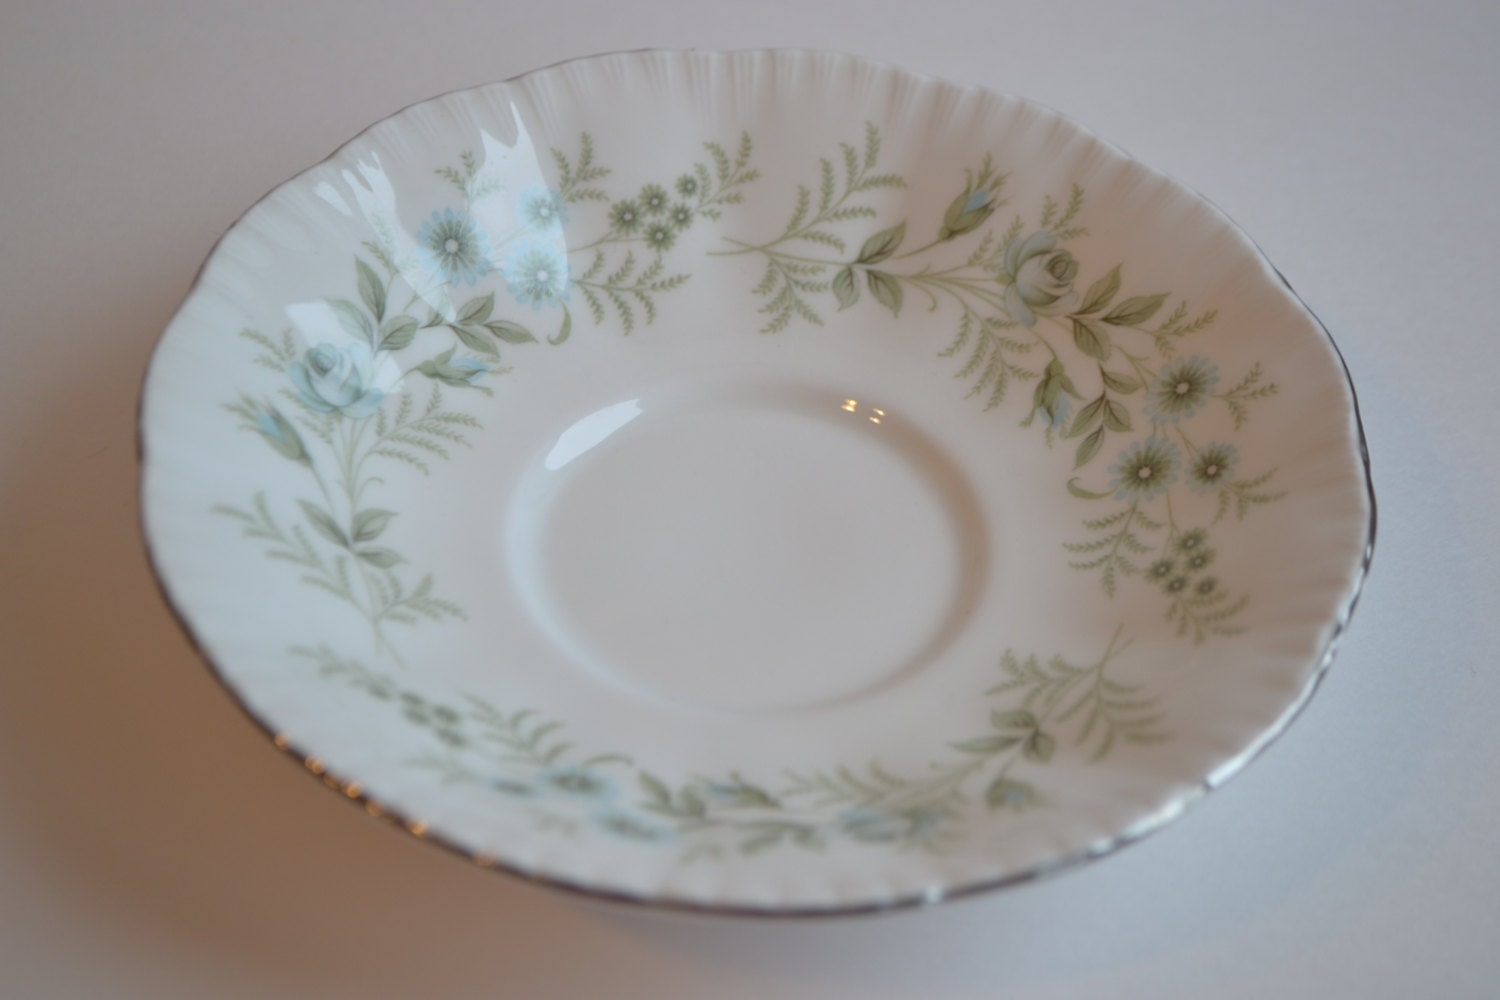 Paragon Debutante Replacement Saucer, saucer only, c. 1963-